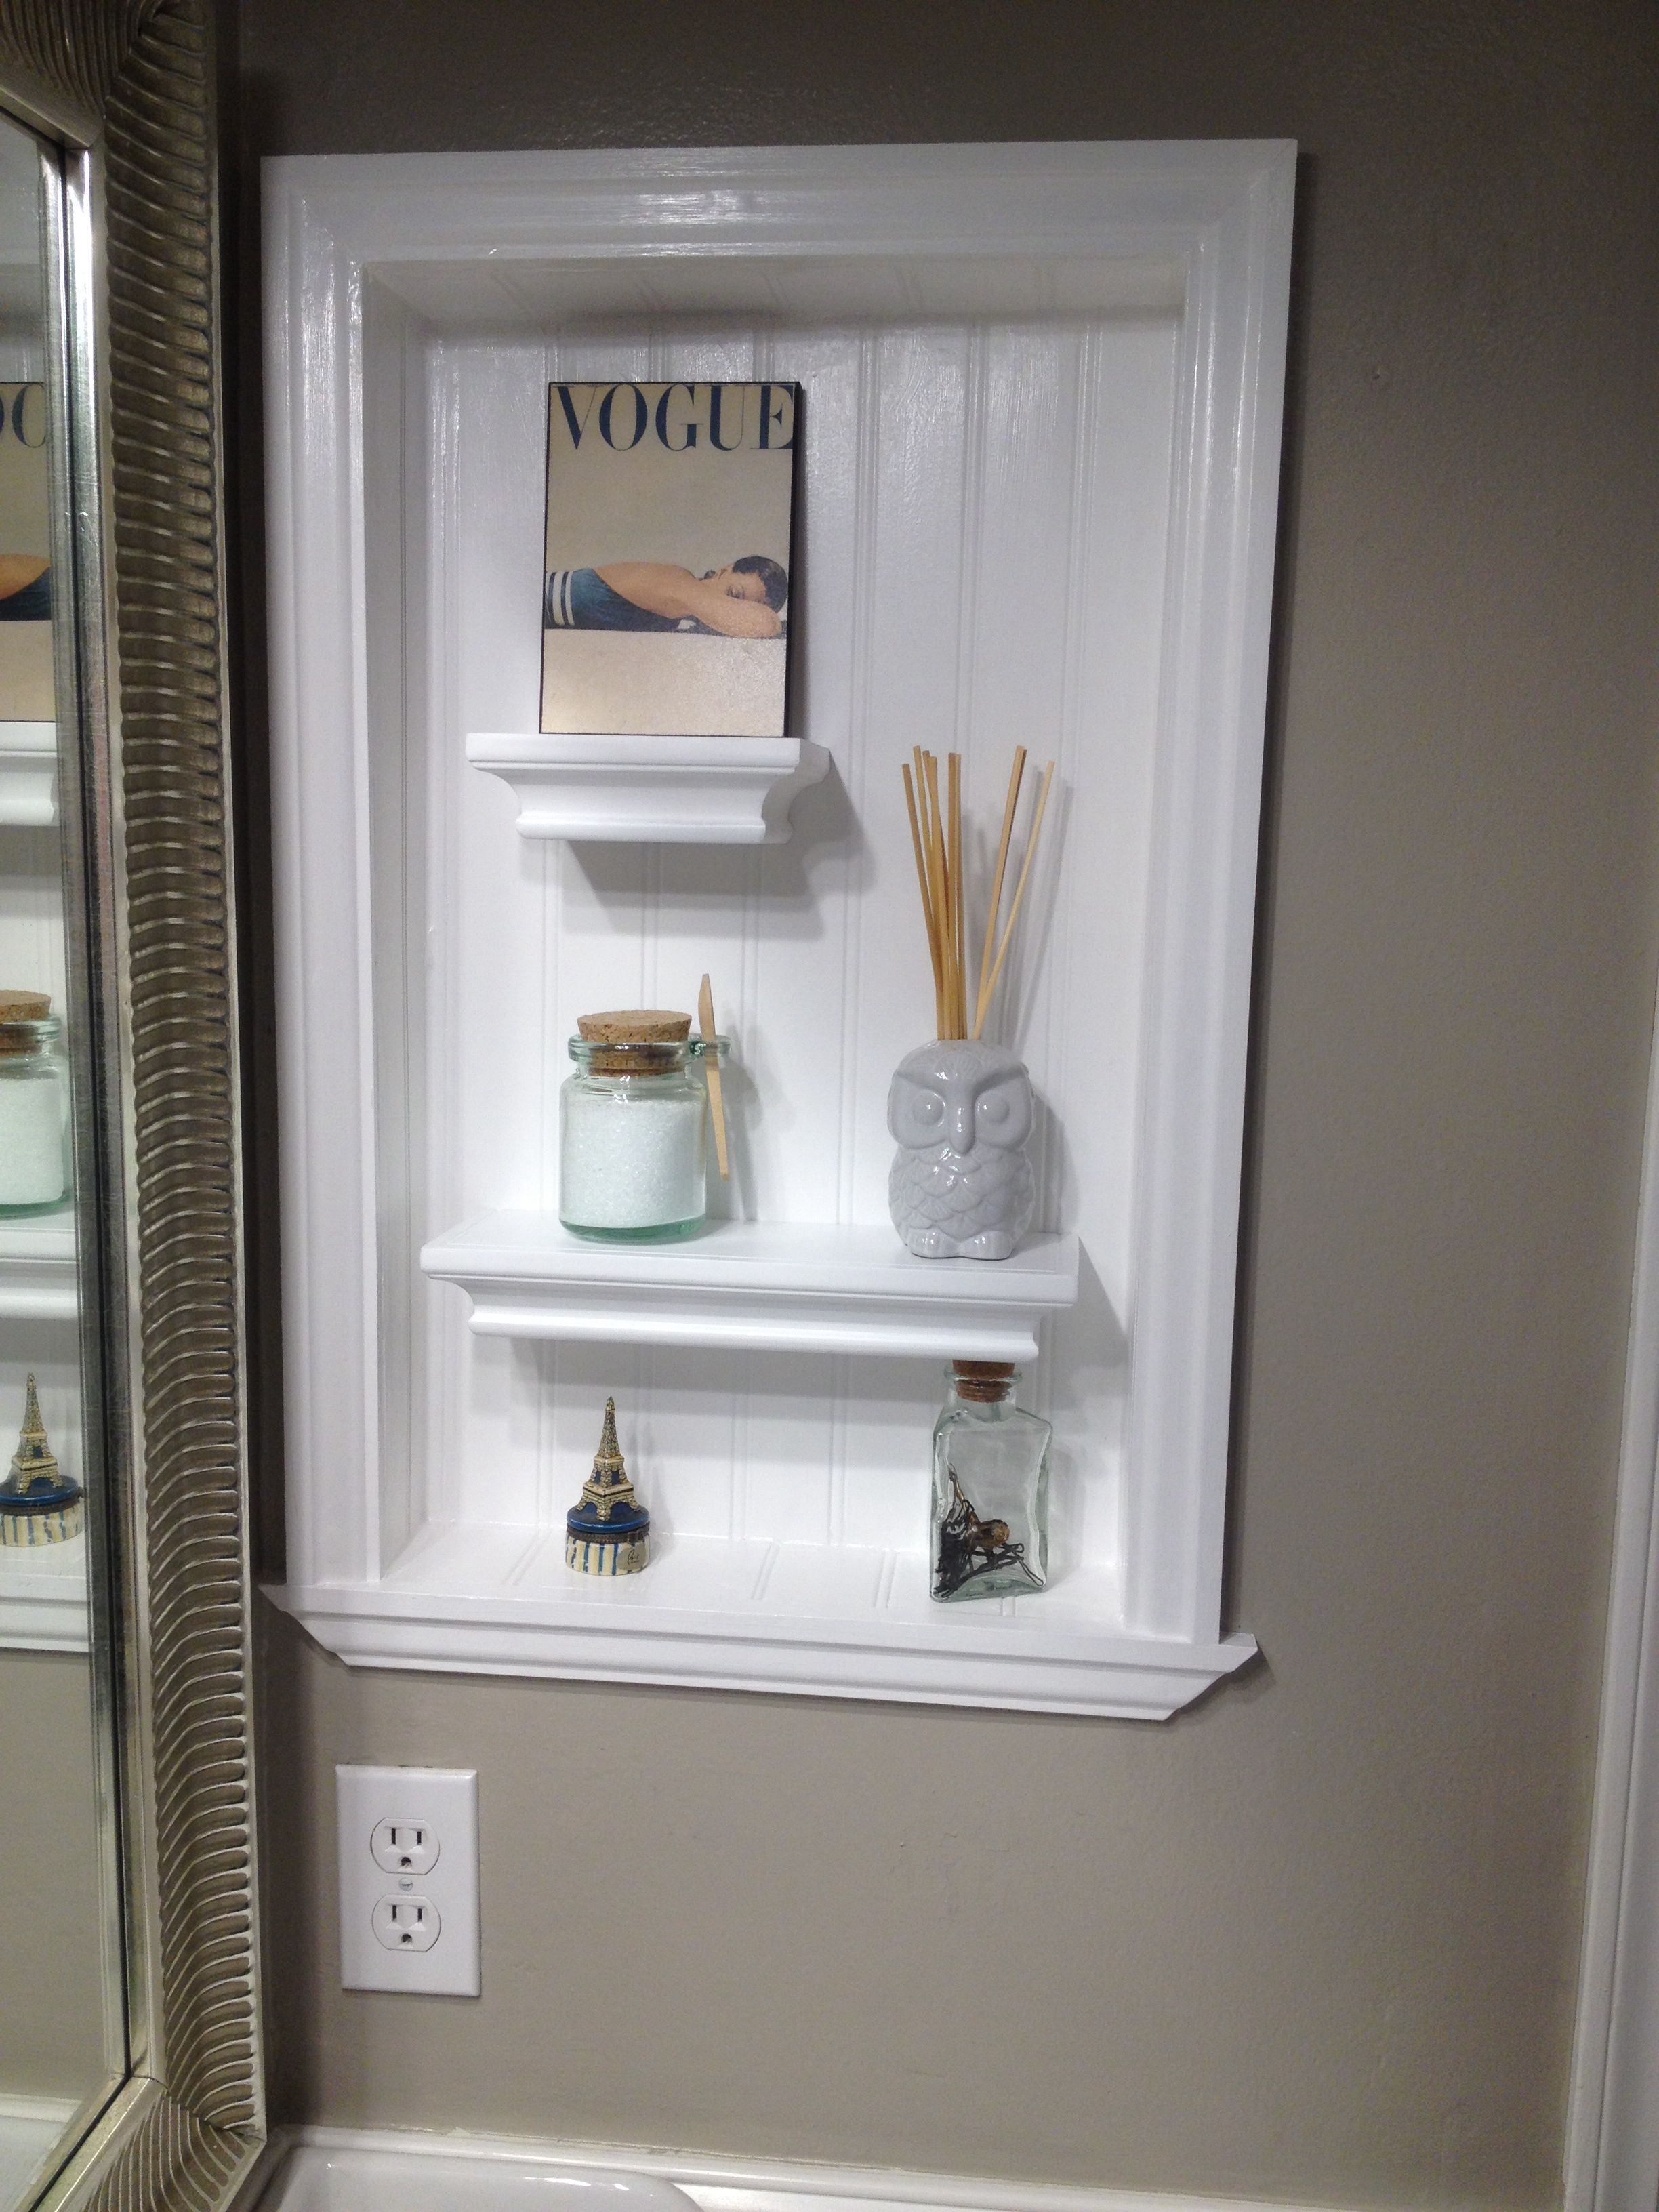 Turn A Hole In The Wall From An Old Mirrored Medicine Cabinet Into